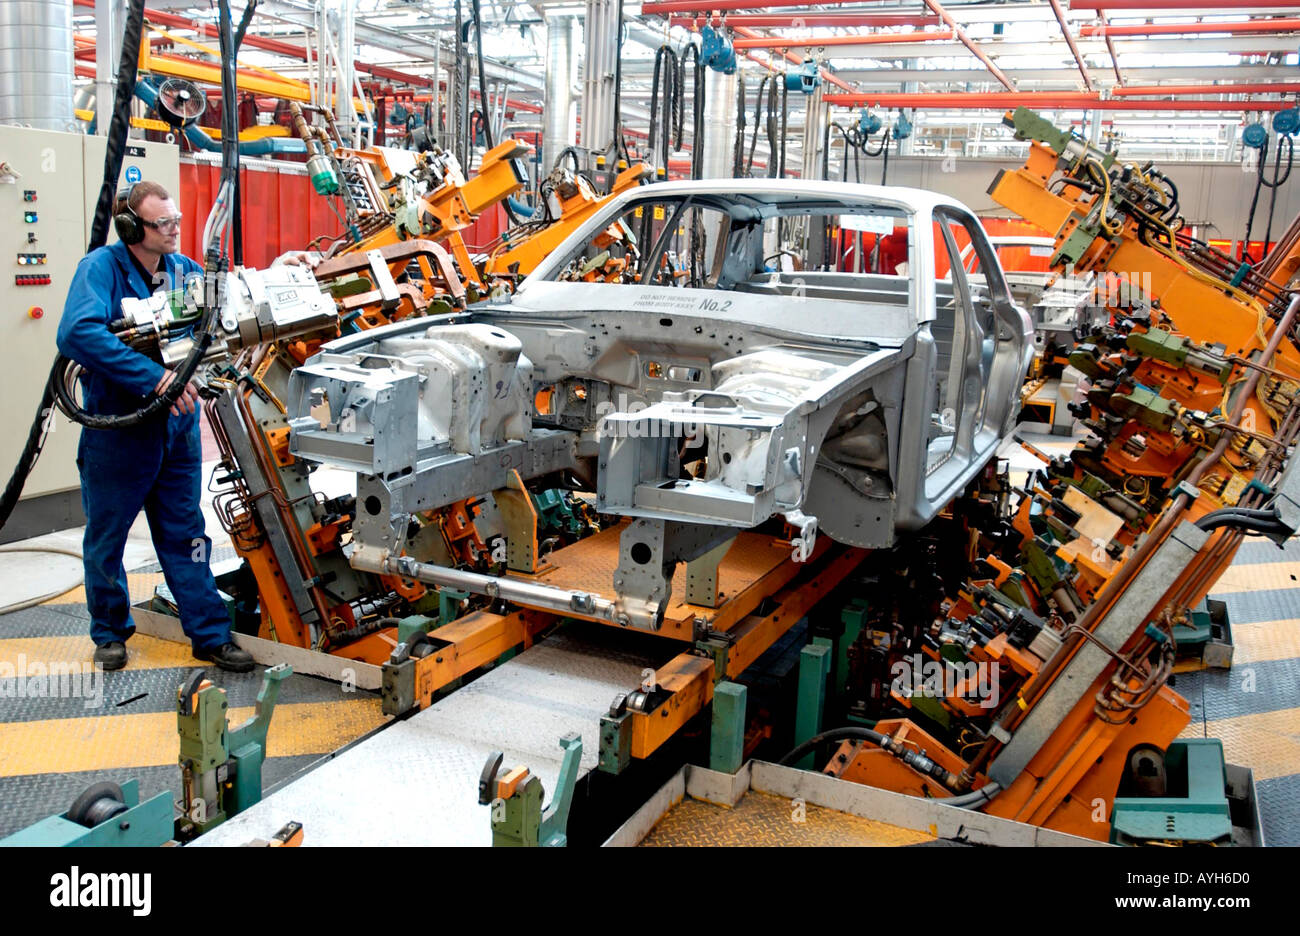 Rolls Royce Bentley production line at the company factory in Crewe, Cheshire. Picture shows welding body panels. - Stock Image